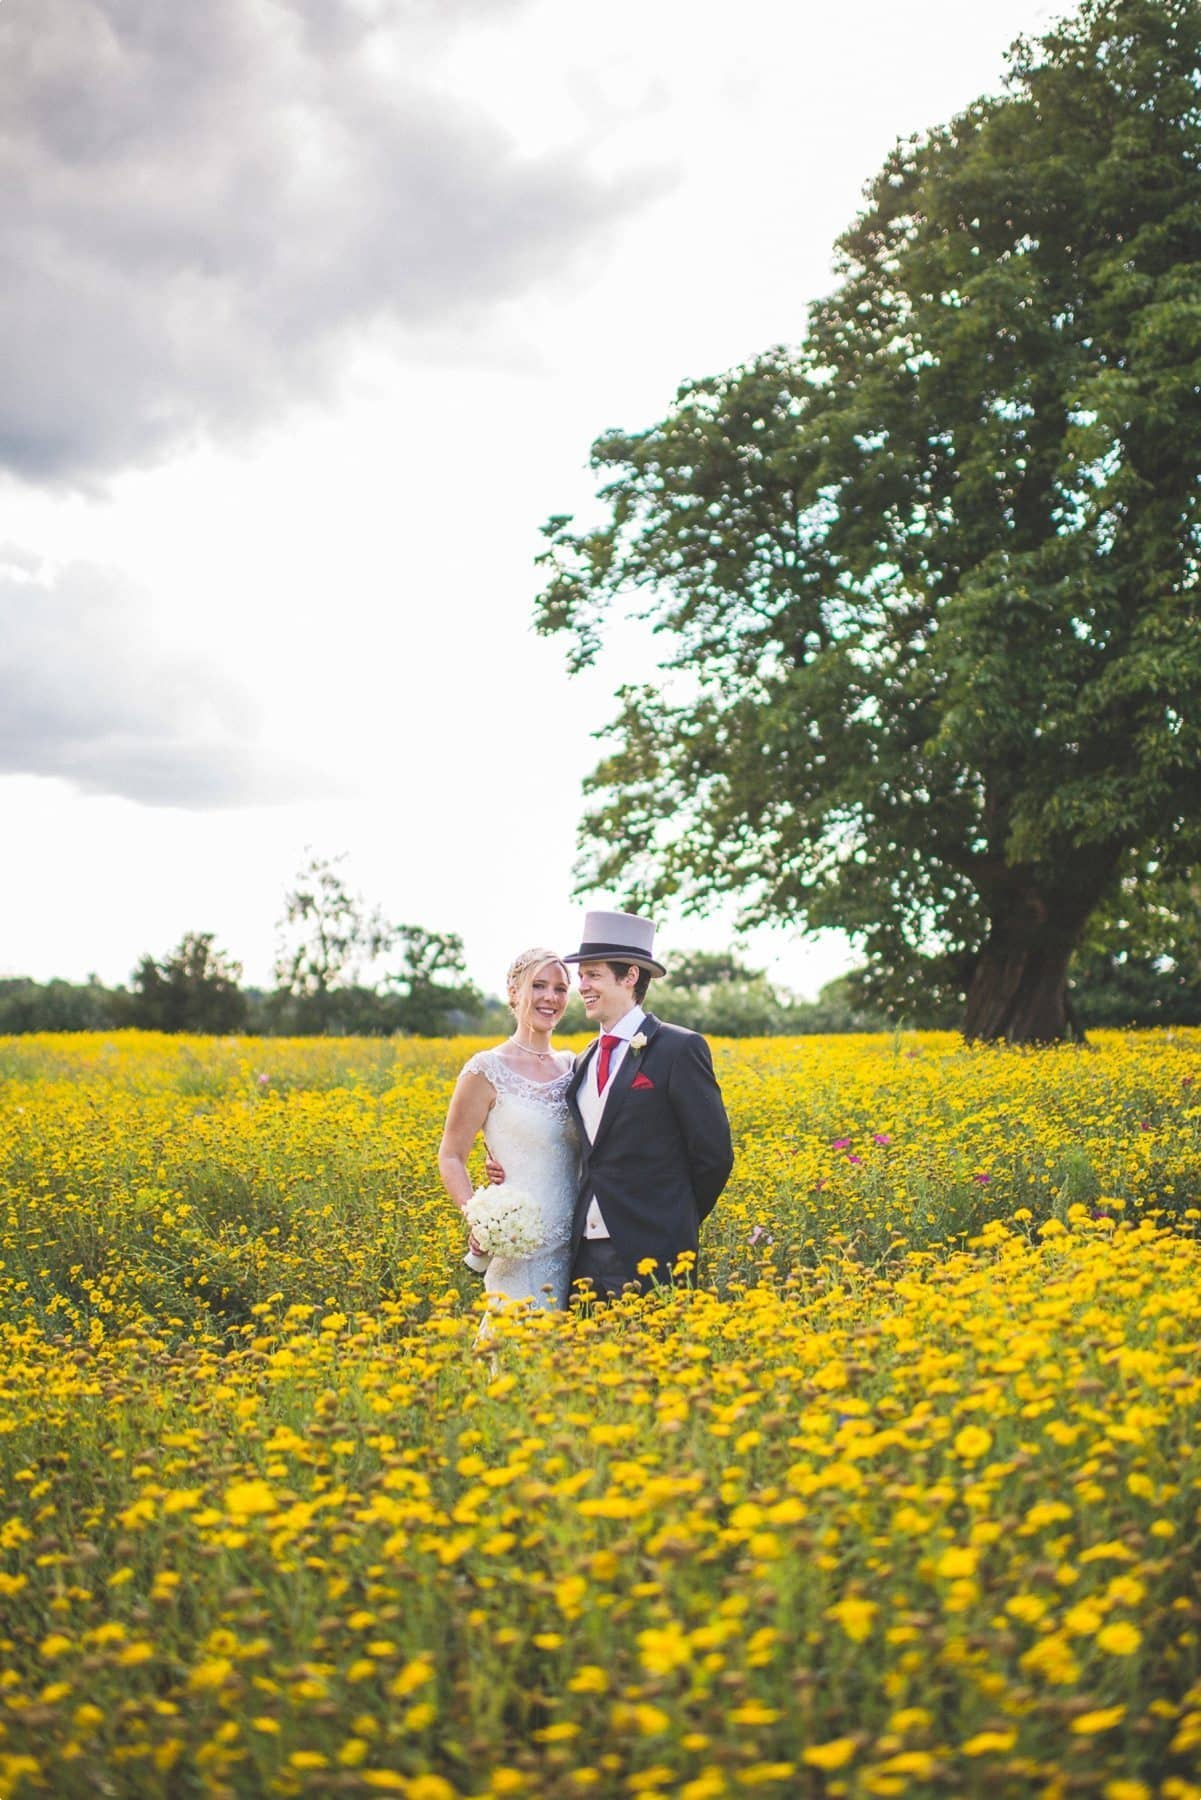 Coworth Park wedding photography of a Bride and Groom standing in the wildflower meadow